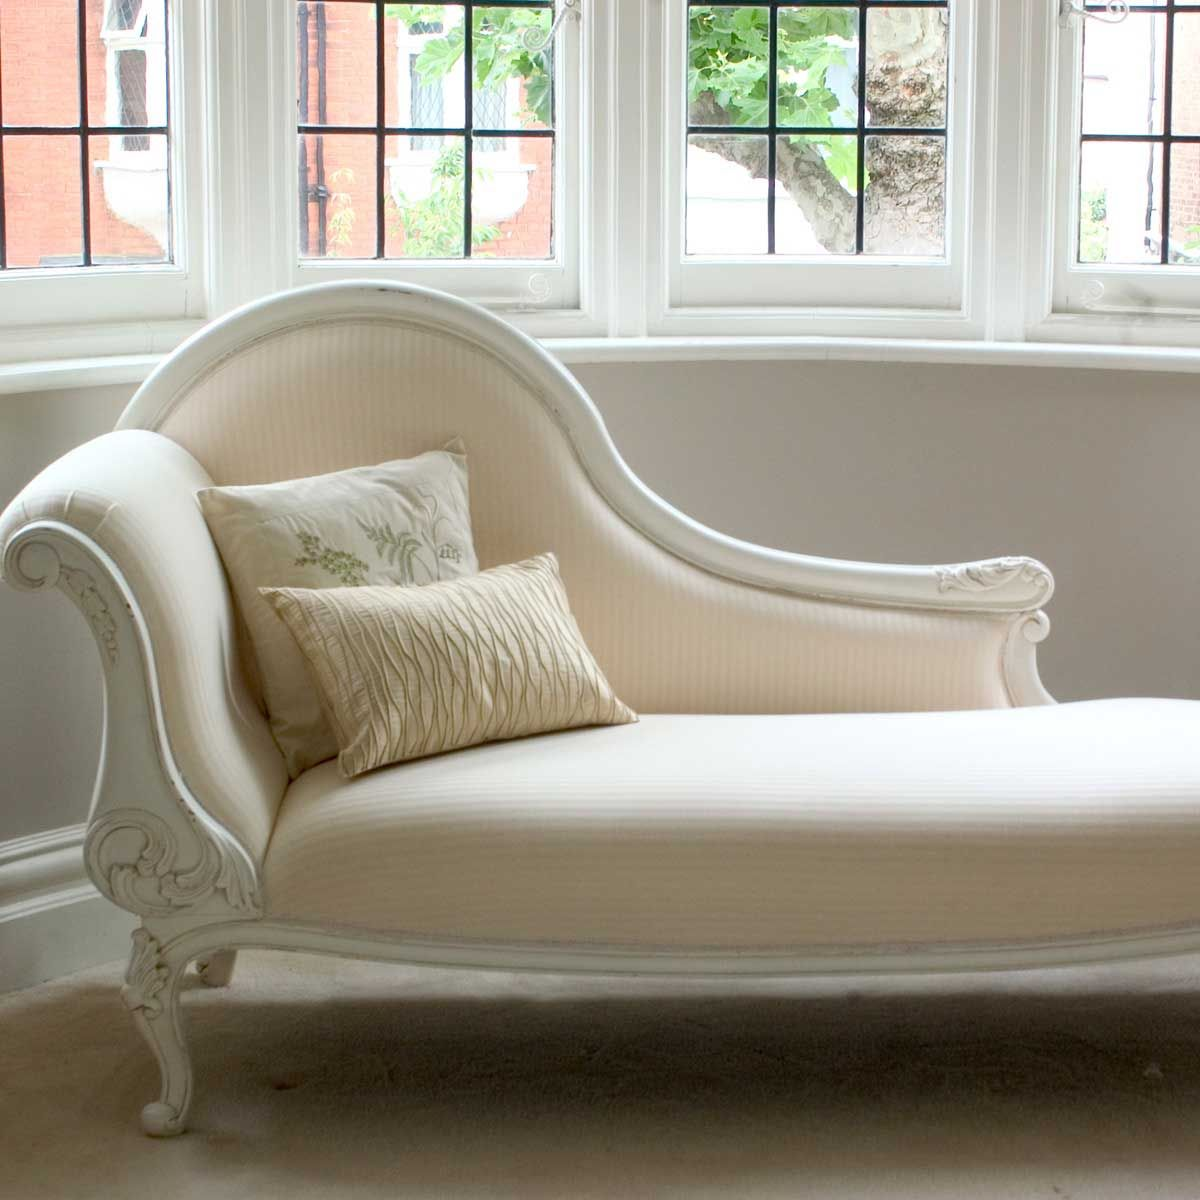 Bedroom Chaise Lounge 2 | Projects to Try | Pinterest | Chaise ...